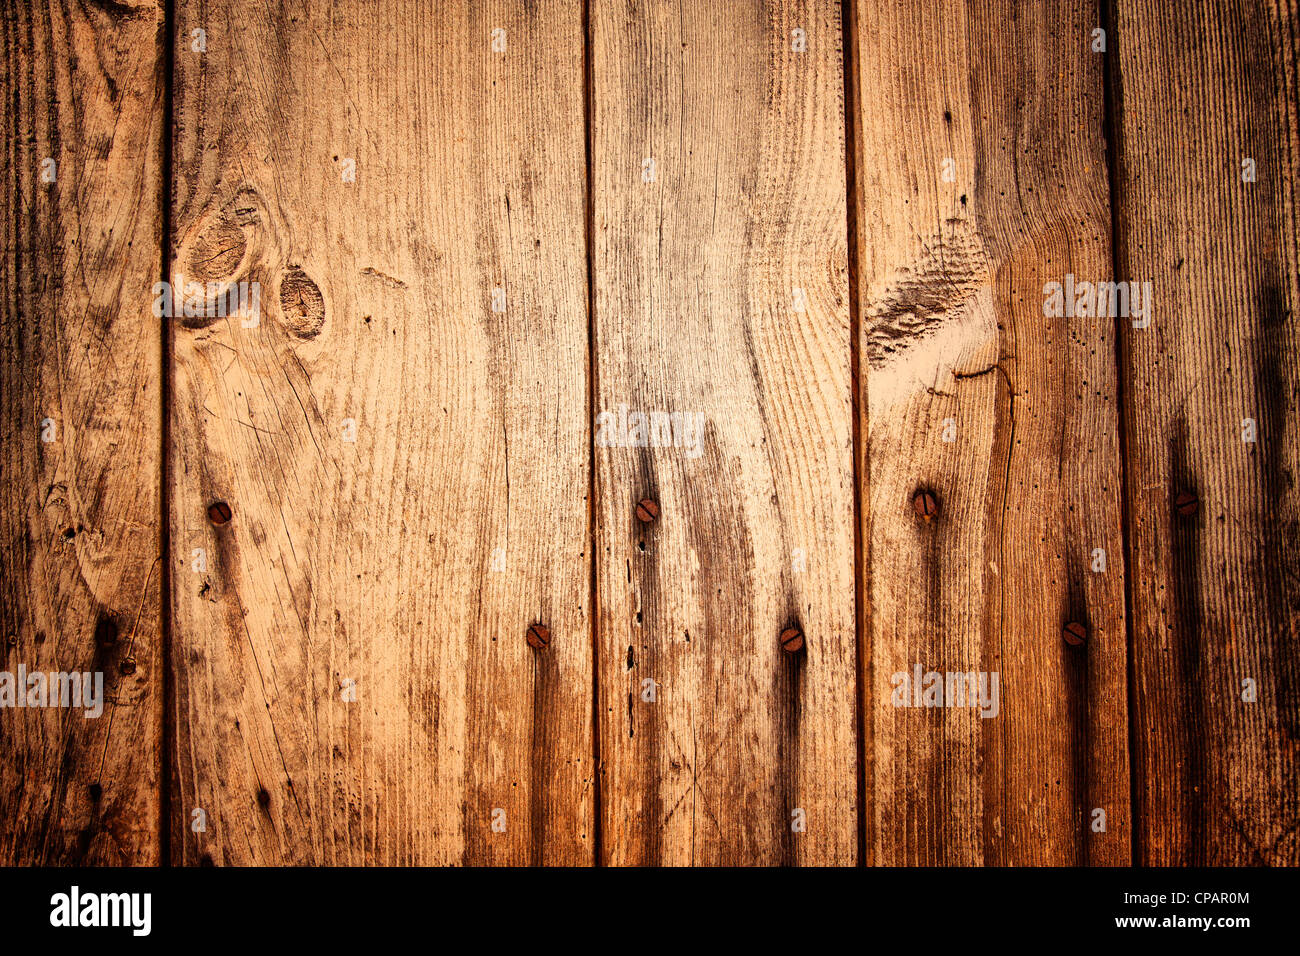 Old Wooden Planks and Nails Stock Photo